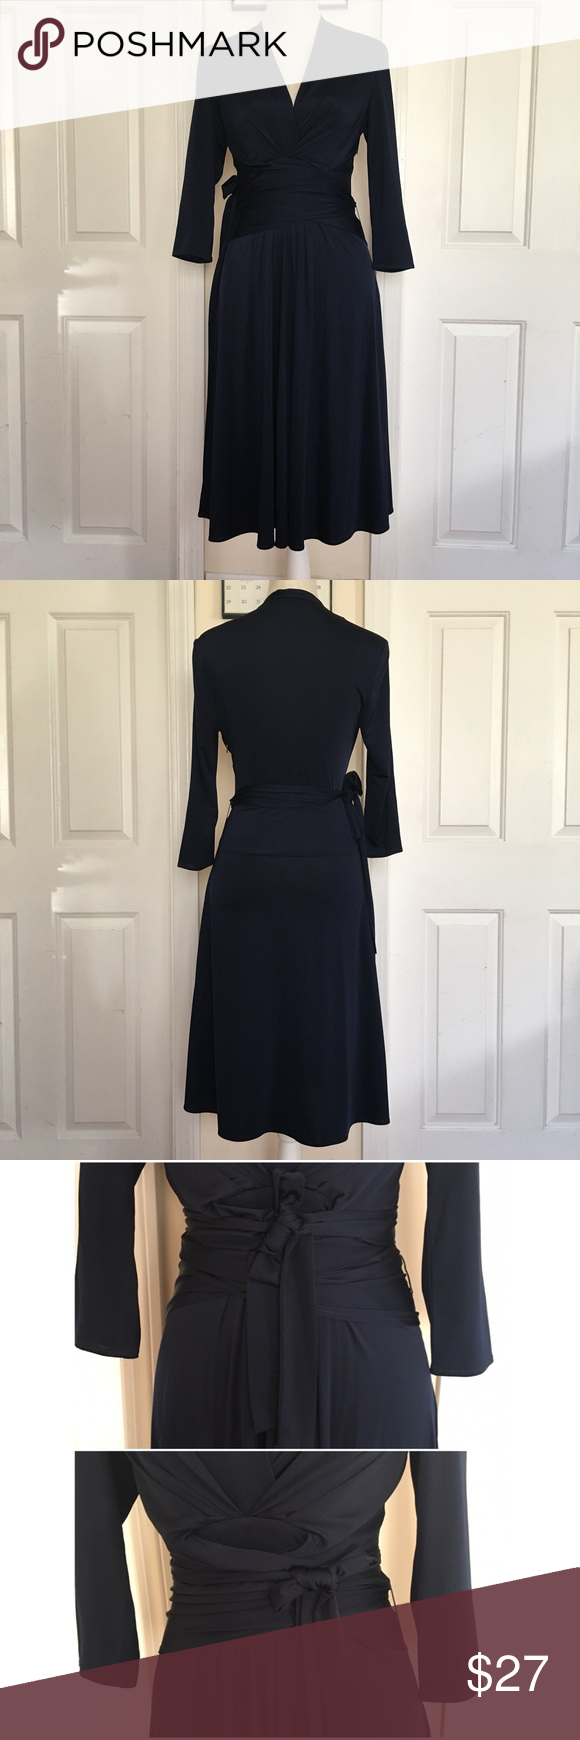 Eliza J Navy Wrap Dress A classy wrap dress that can either dress up to a party/event or dress it down for everyday wear. Worn once. Size 4. Eliza J Dresses Long Sleeve